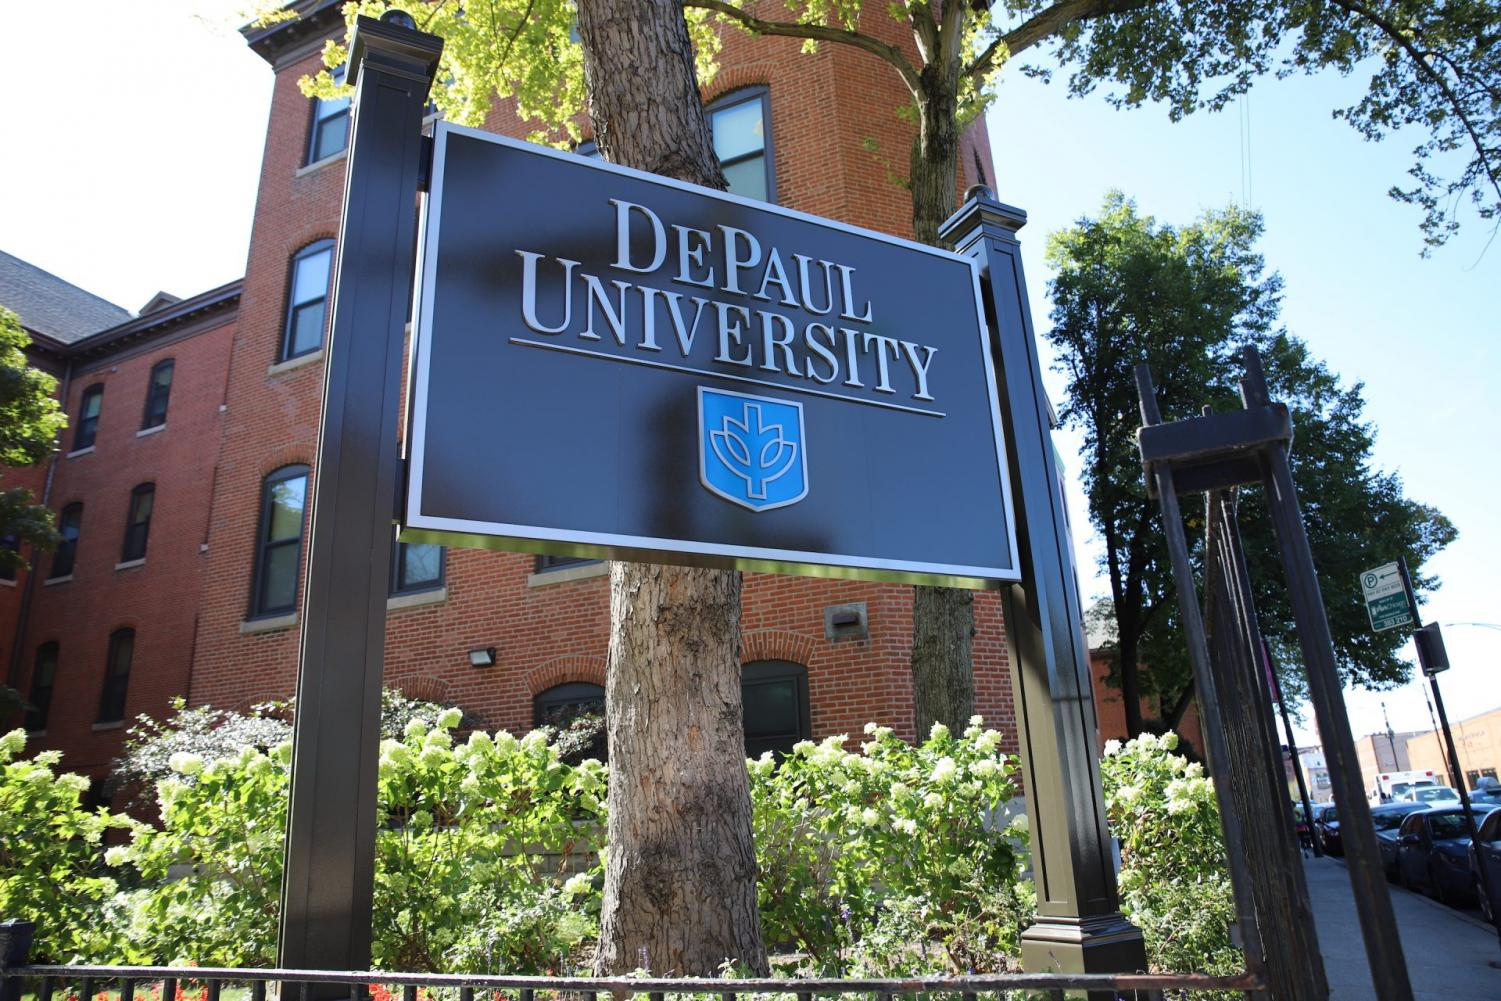 DePaul University Lincoln Park campus